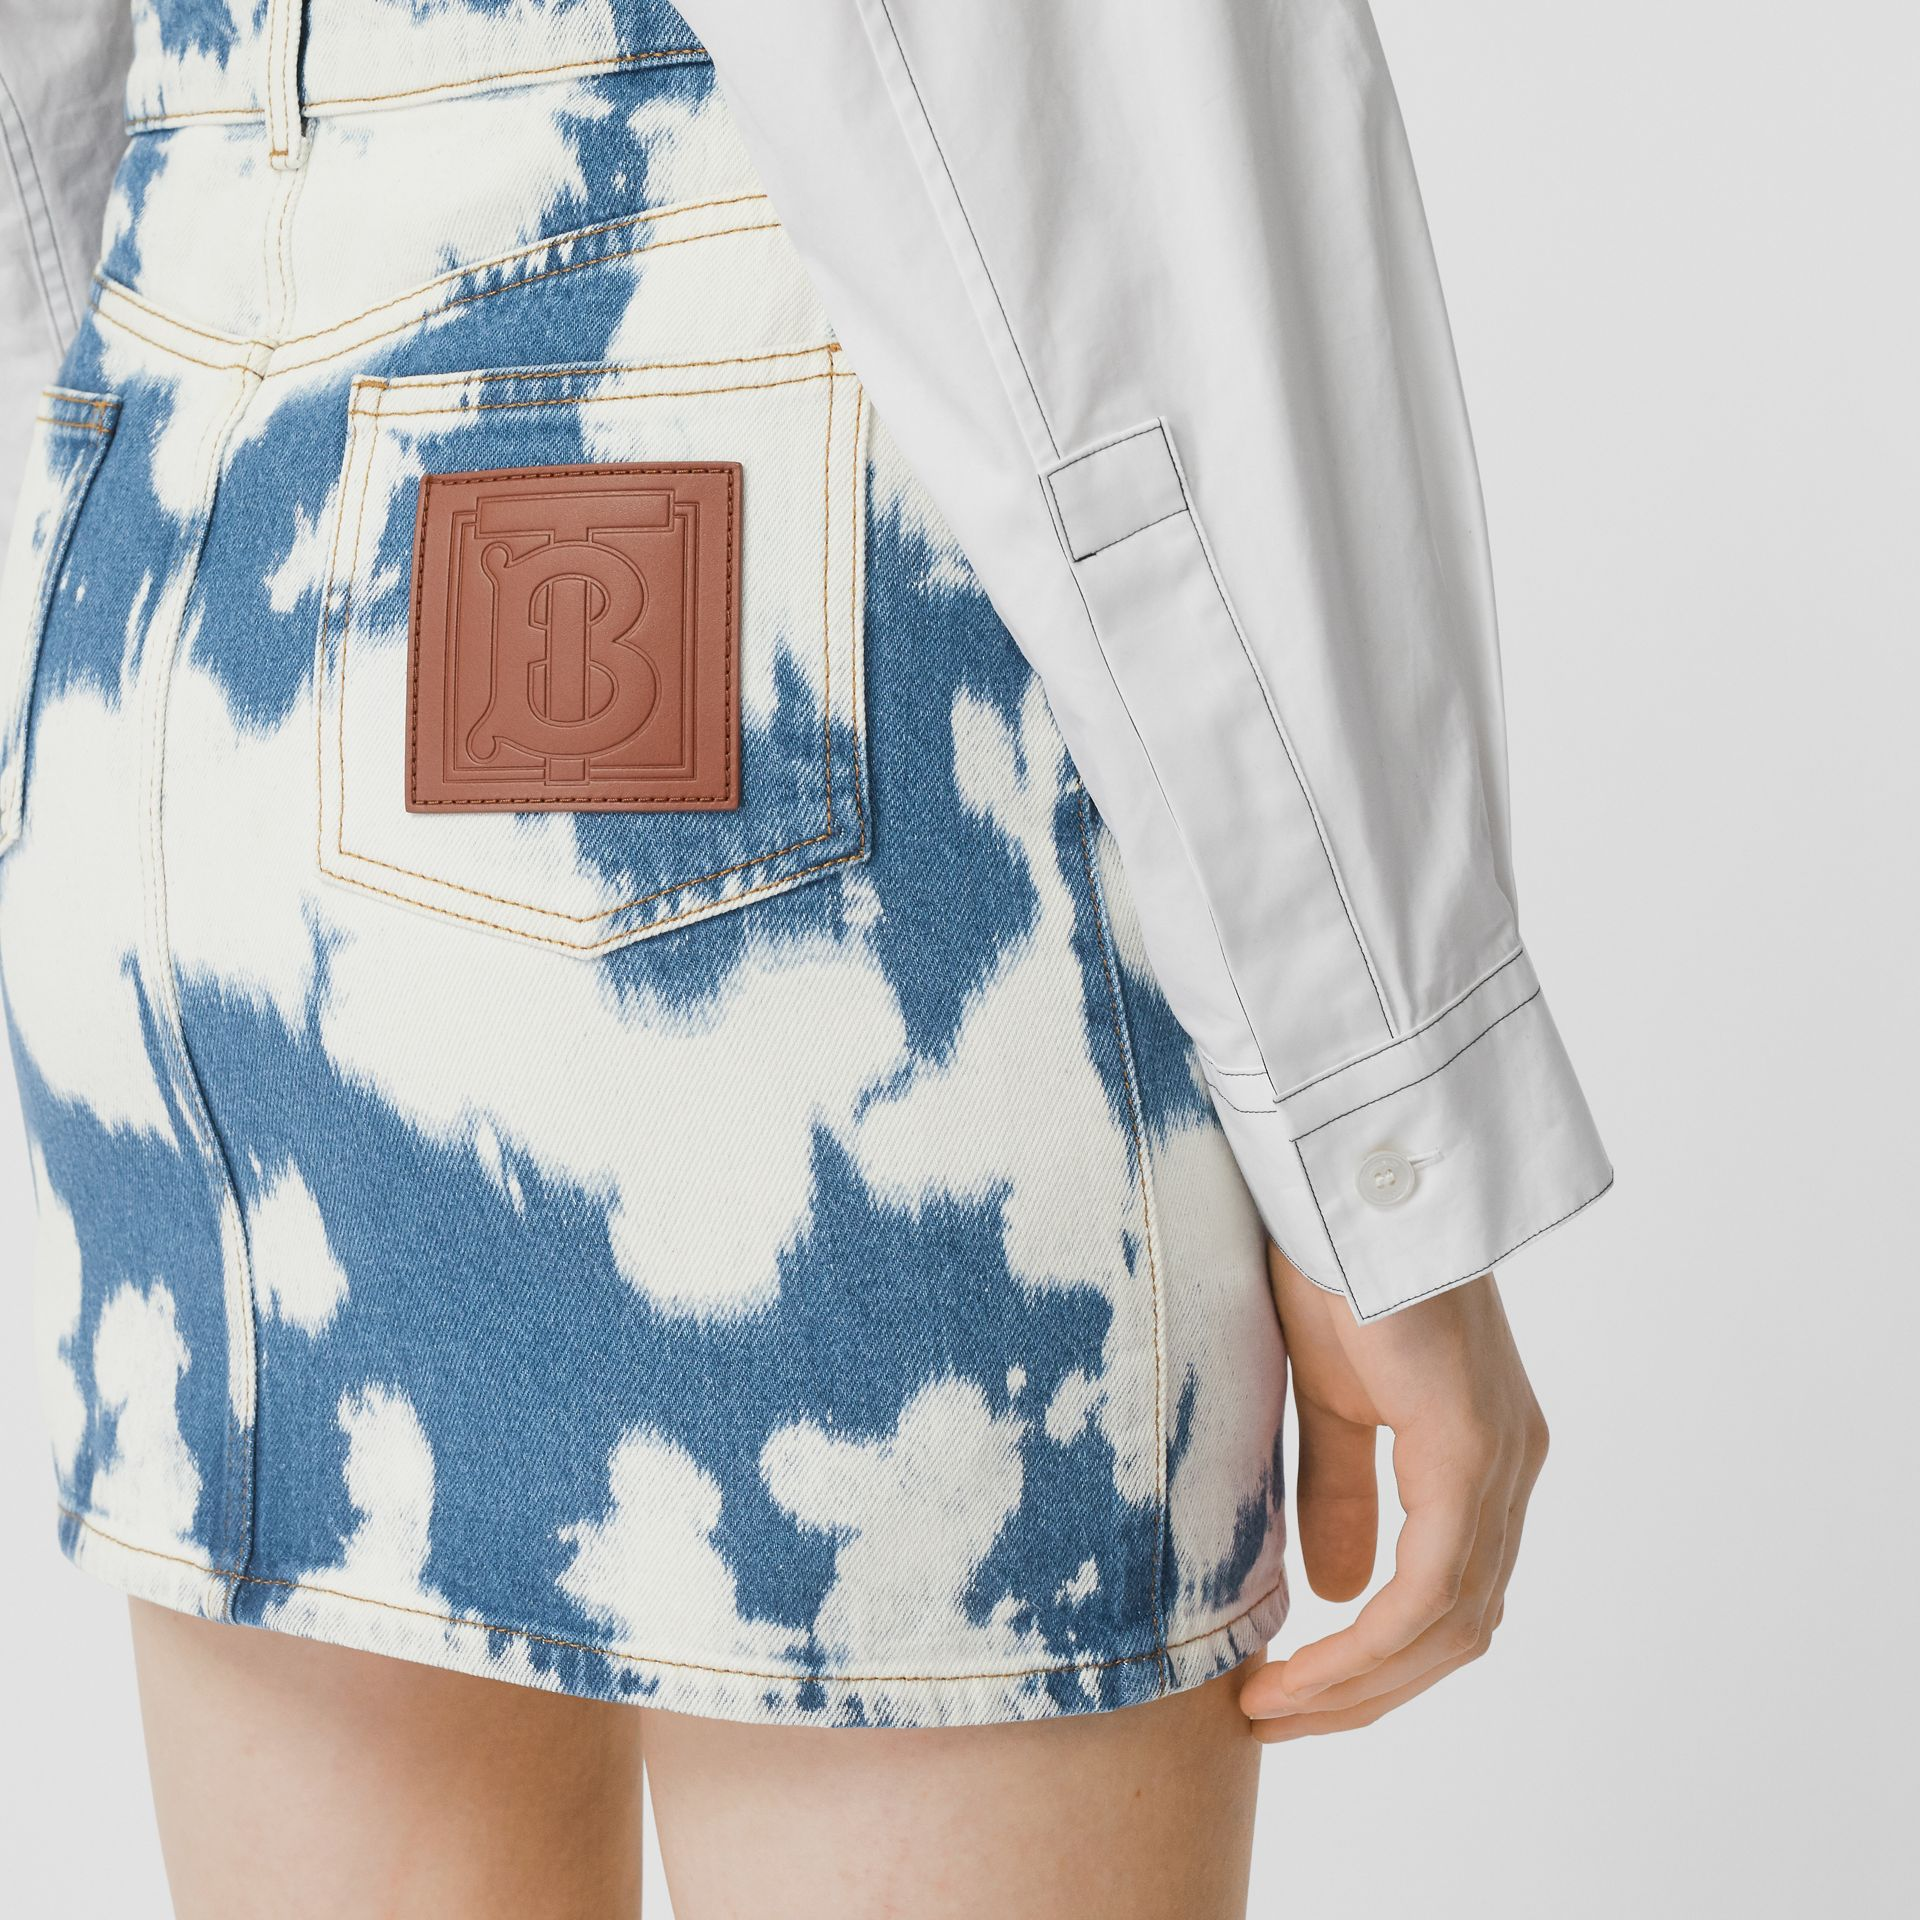 Monogram Motif Bleached Denim Mini Skirt in Blue - Women | Burberry United Kingdom - gallery image 1